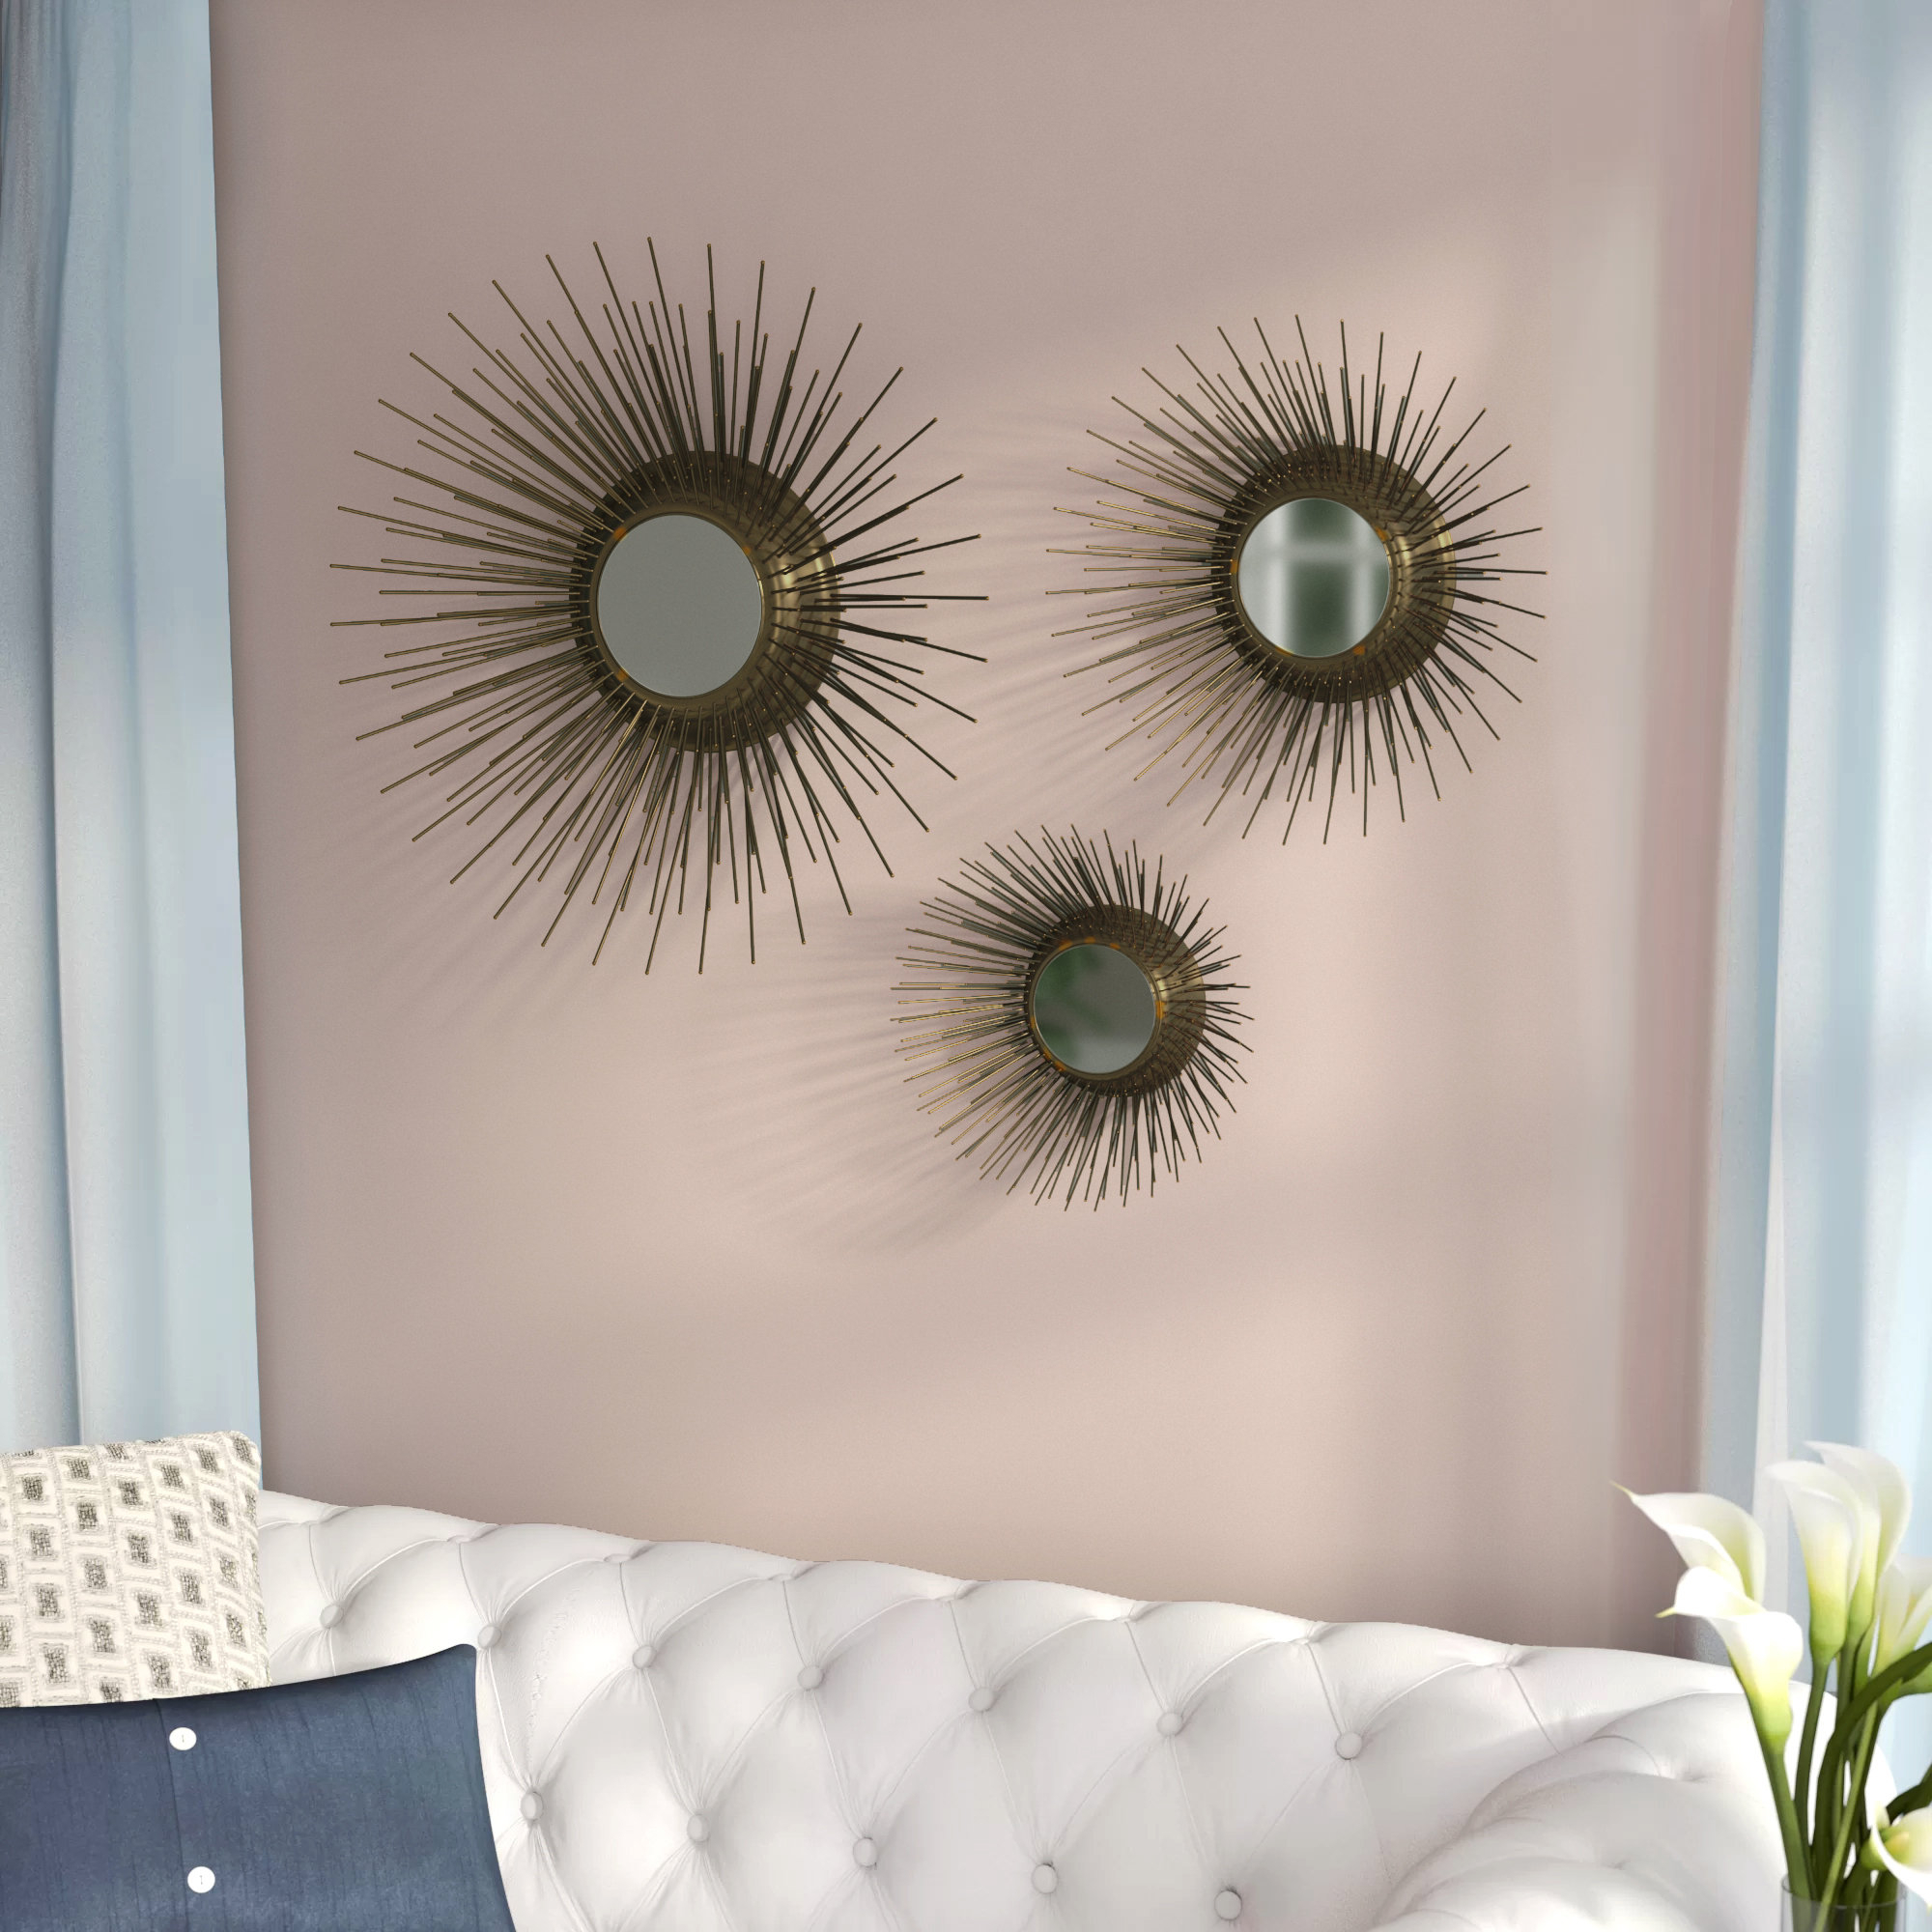 Starburst Wall Decor By Willa Arlo Interiors Within 2019 Willa Arlo Interiors Warfel 3 Piece Sunburst Triptych Mirror Set (View 12 of 20)